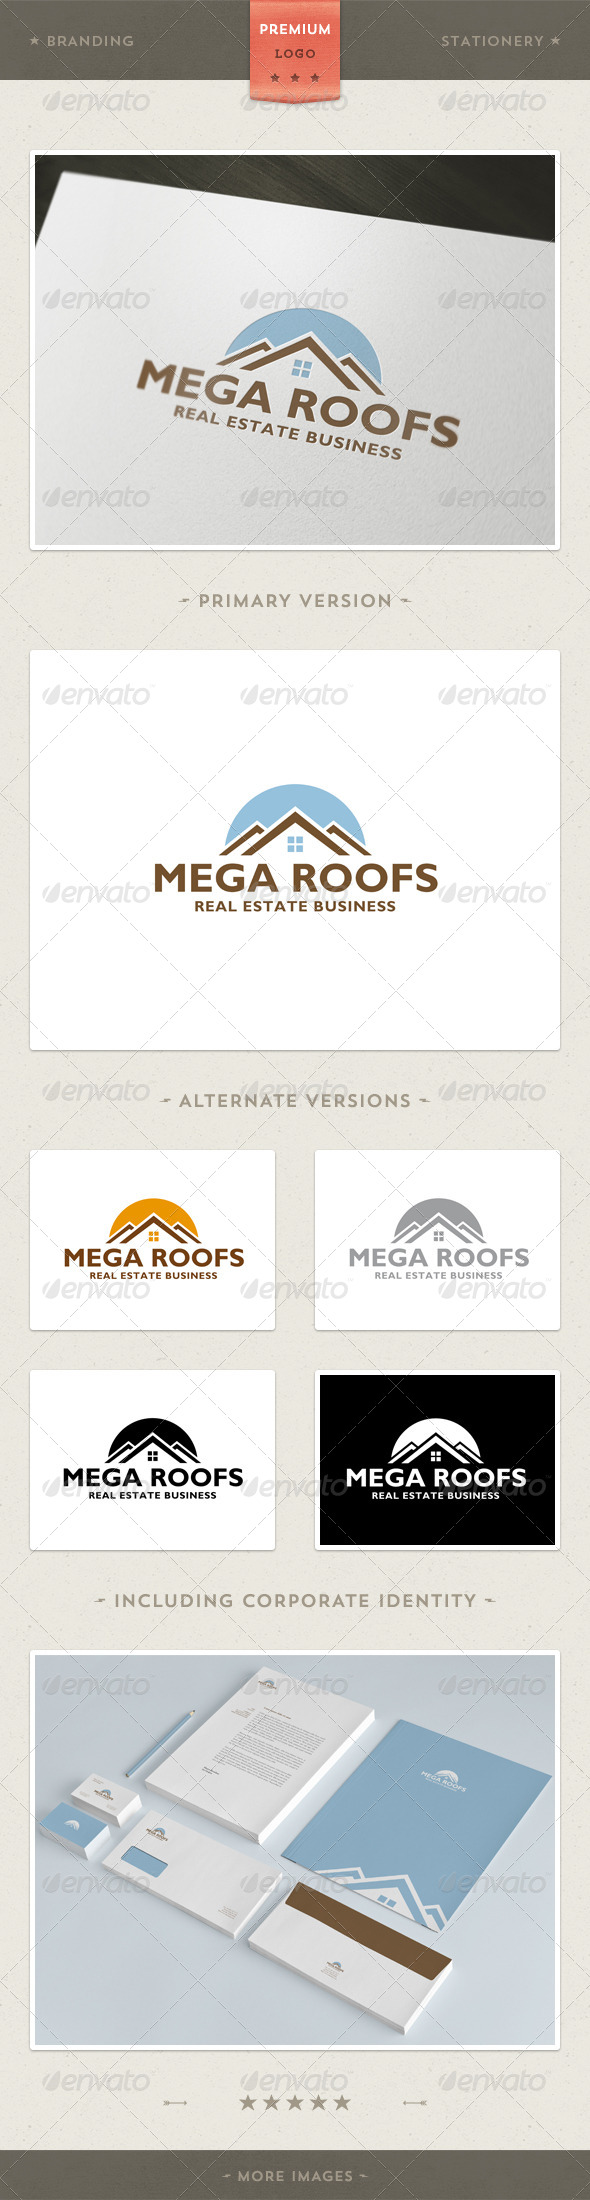 GraphicRiver Mega Roofs Real Estate and Architecture & Branding Identity 3909034